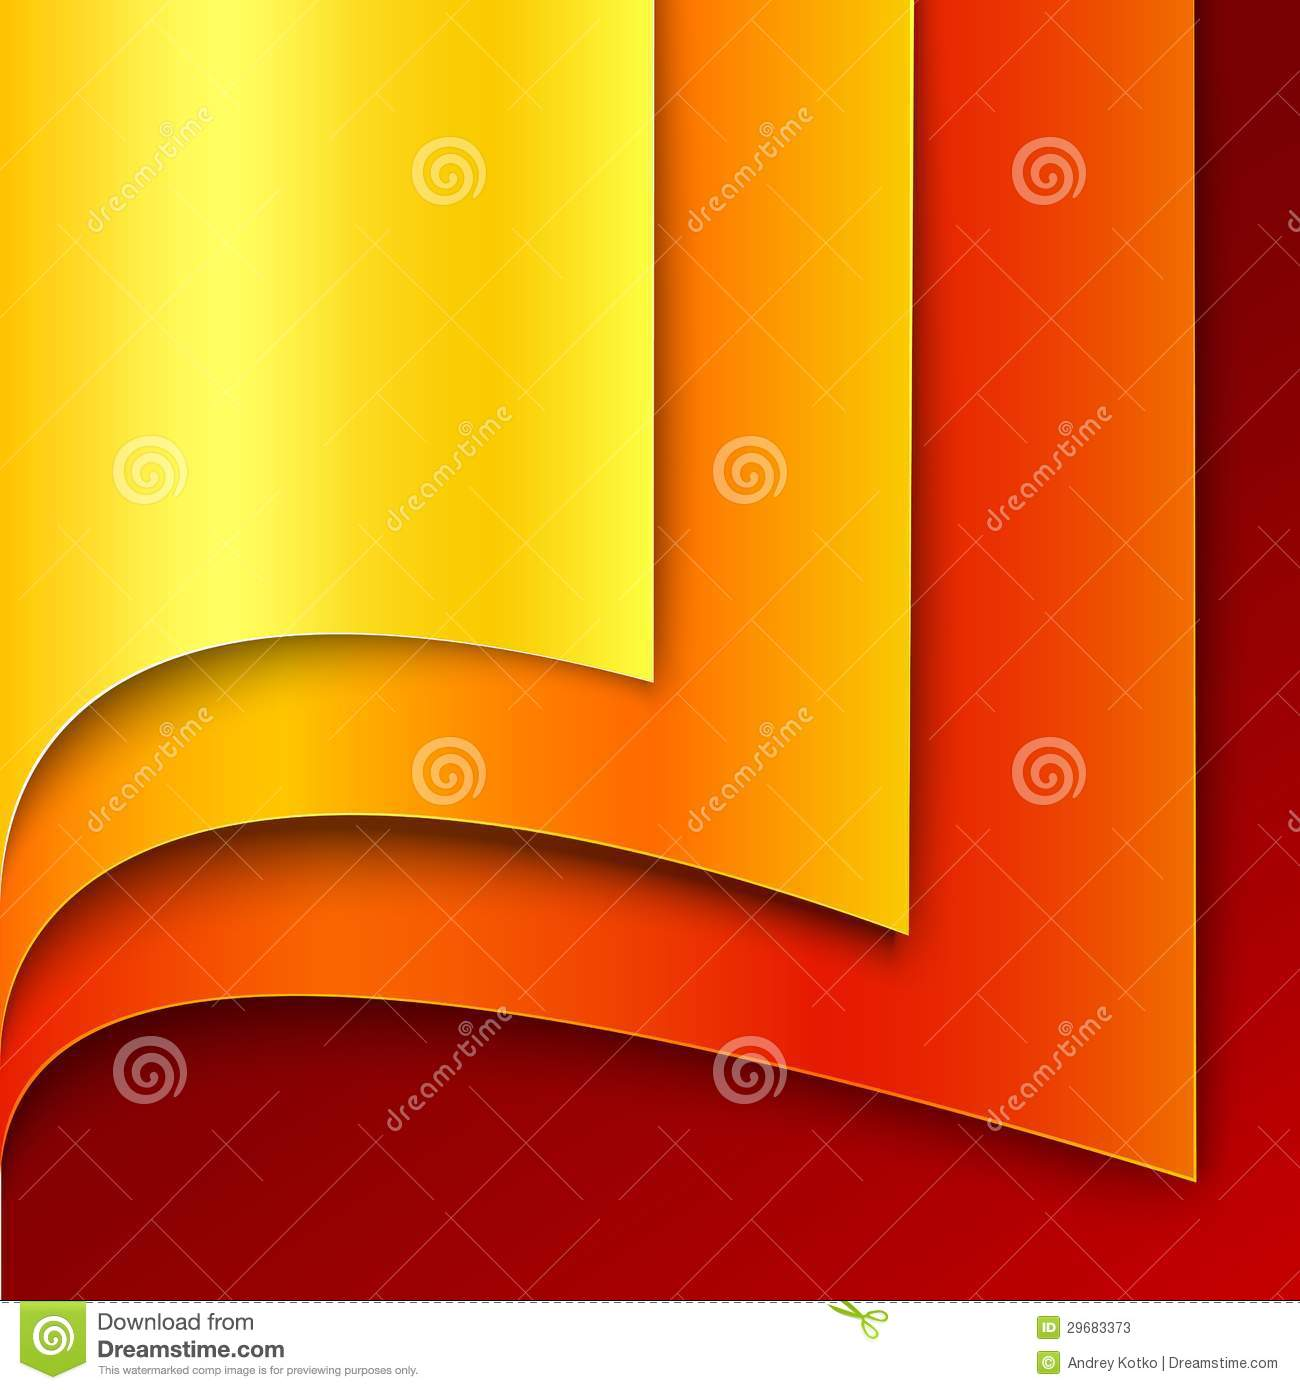 effects of colored paper to the Similar images to colored paper sheets stock photo id: 208671073 similar stock photos to image id 208671073 (75 image matches) set of colored papers.